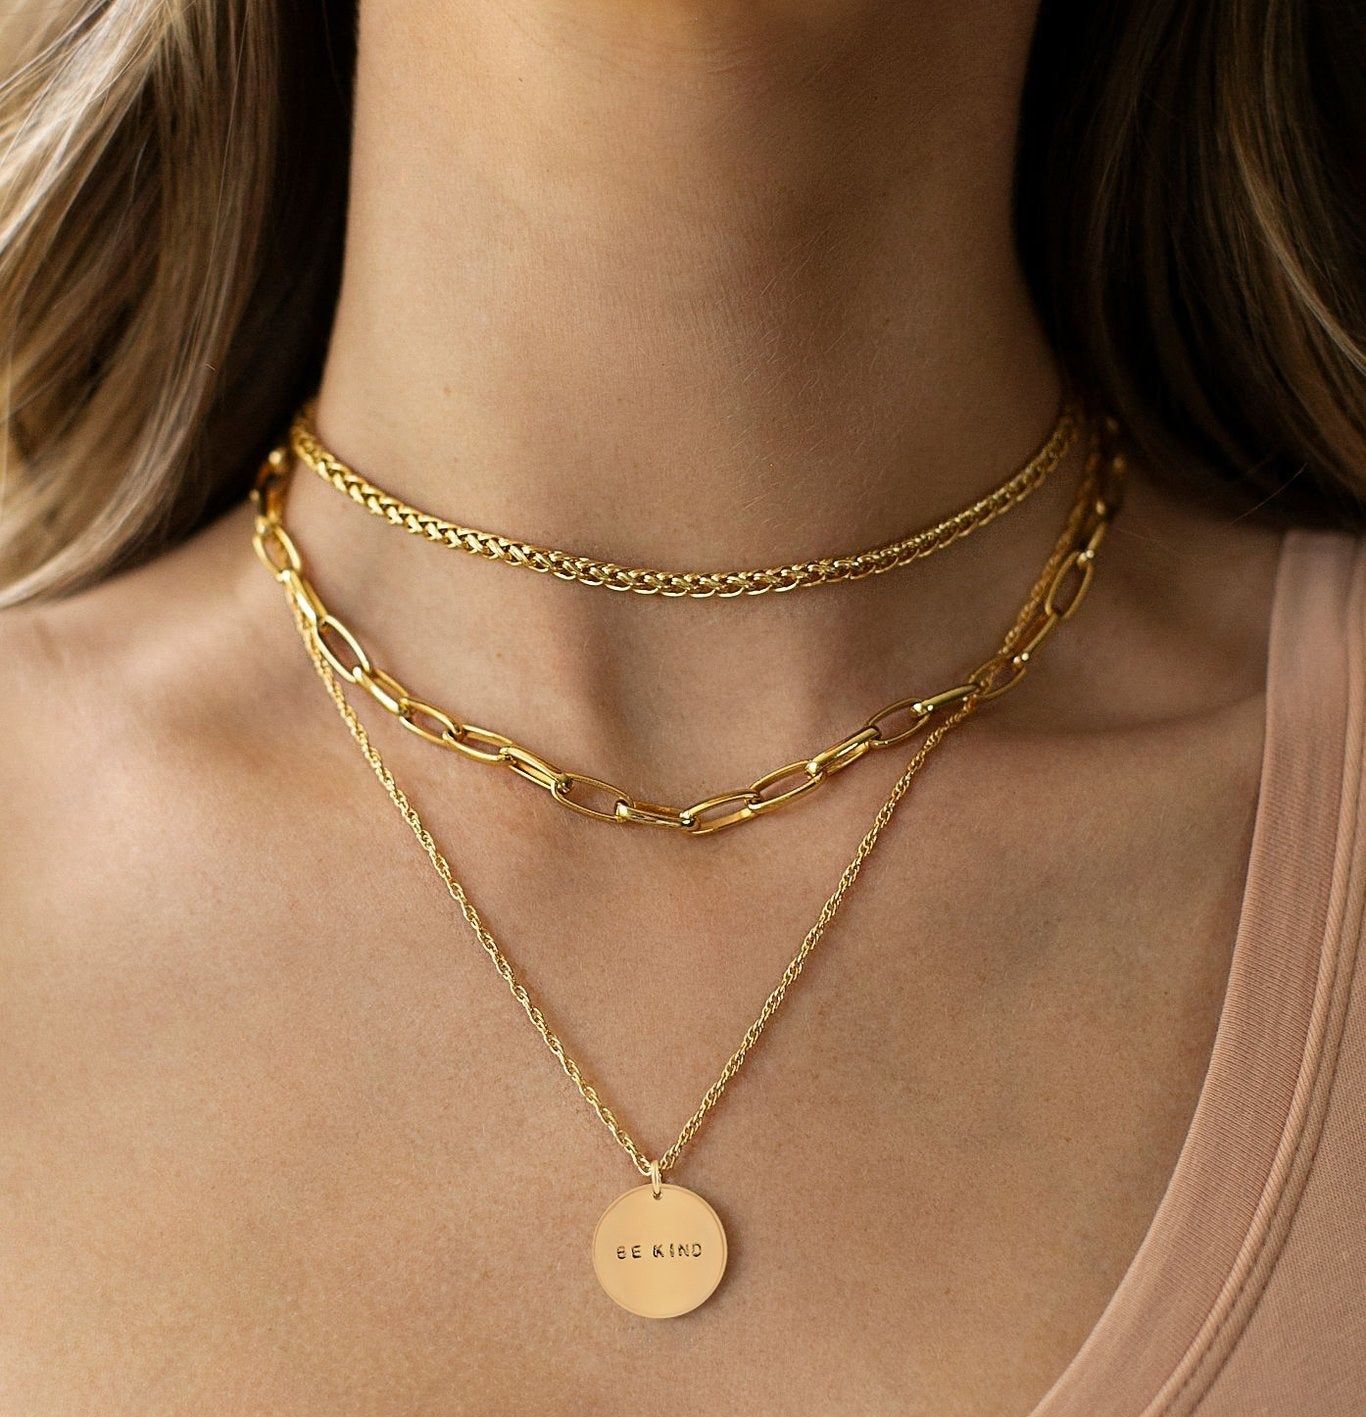 model wearing two chain and one pendant necklaces